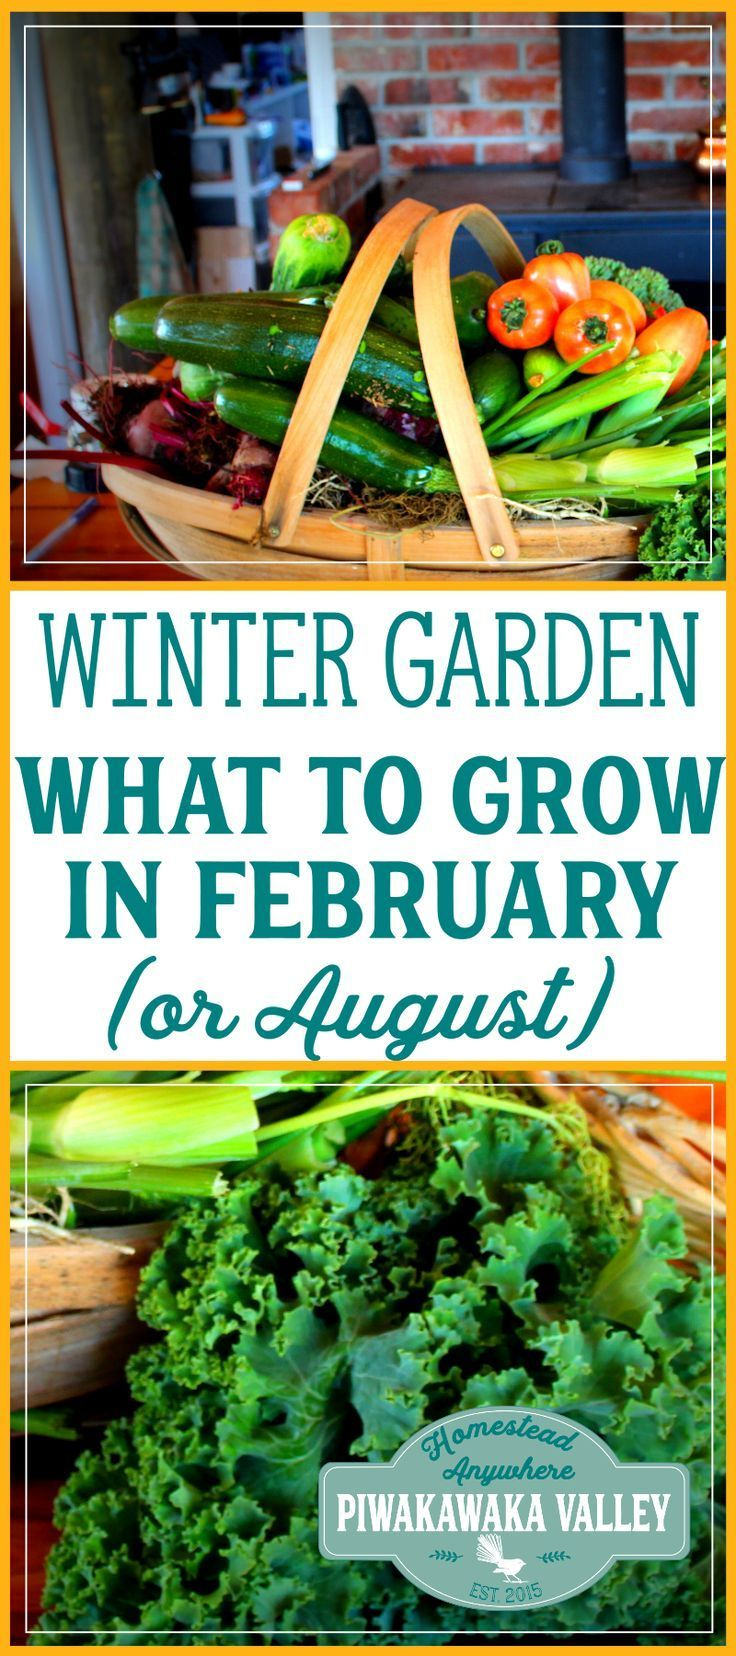 What to Plant in your Winter Vegetable Garden in February (or August!)